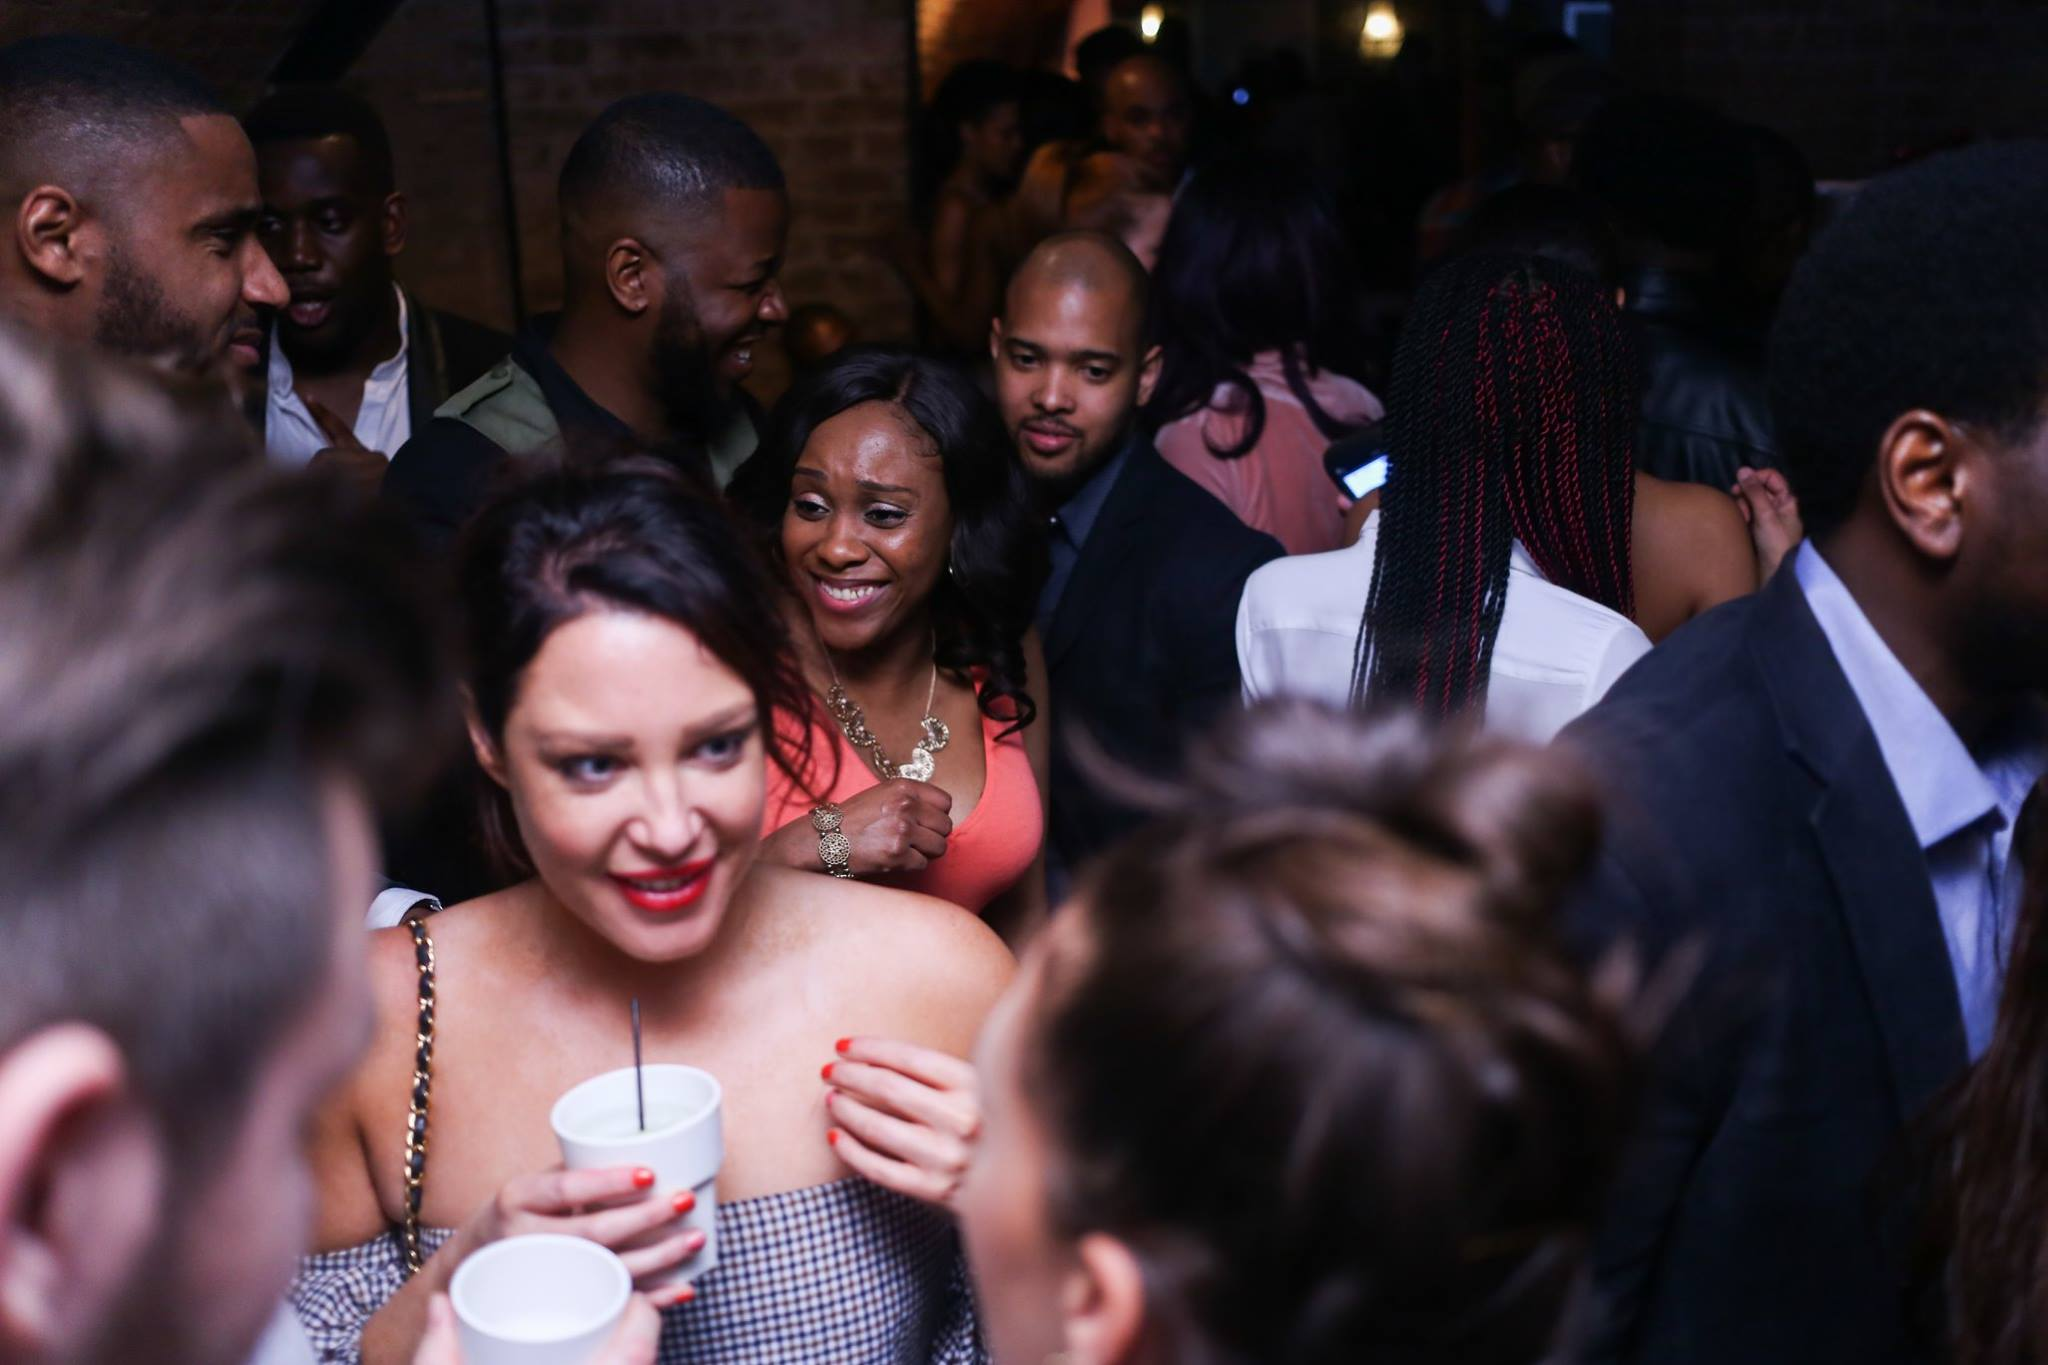 #CityNights: Casino + Networking Party